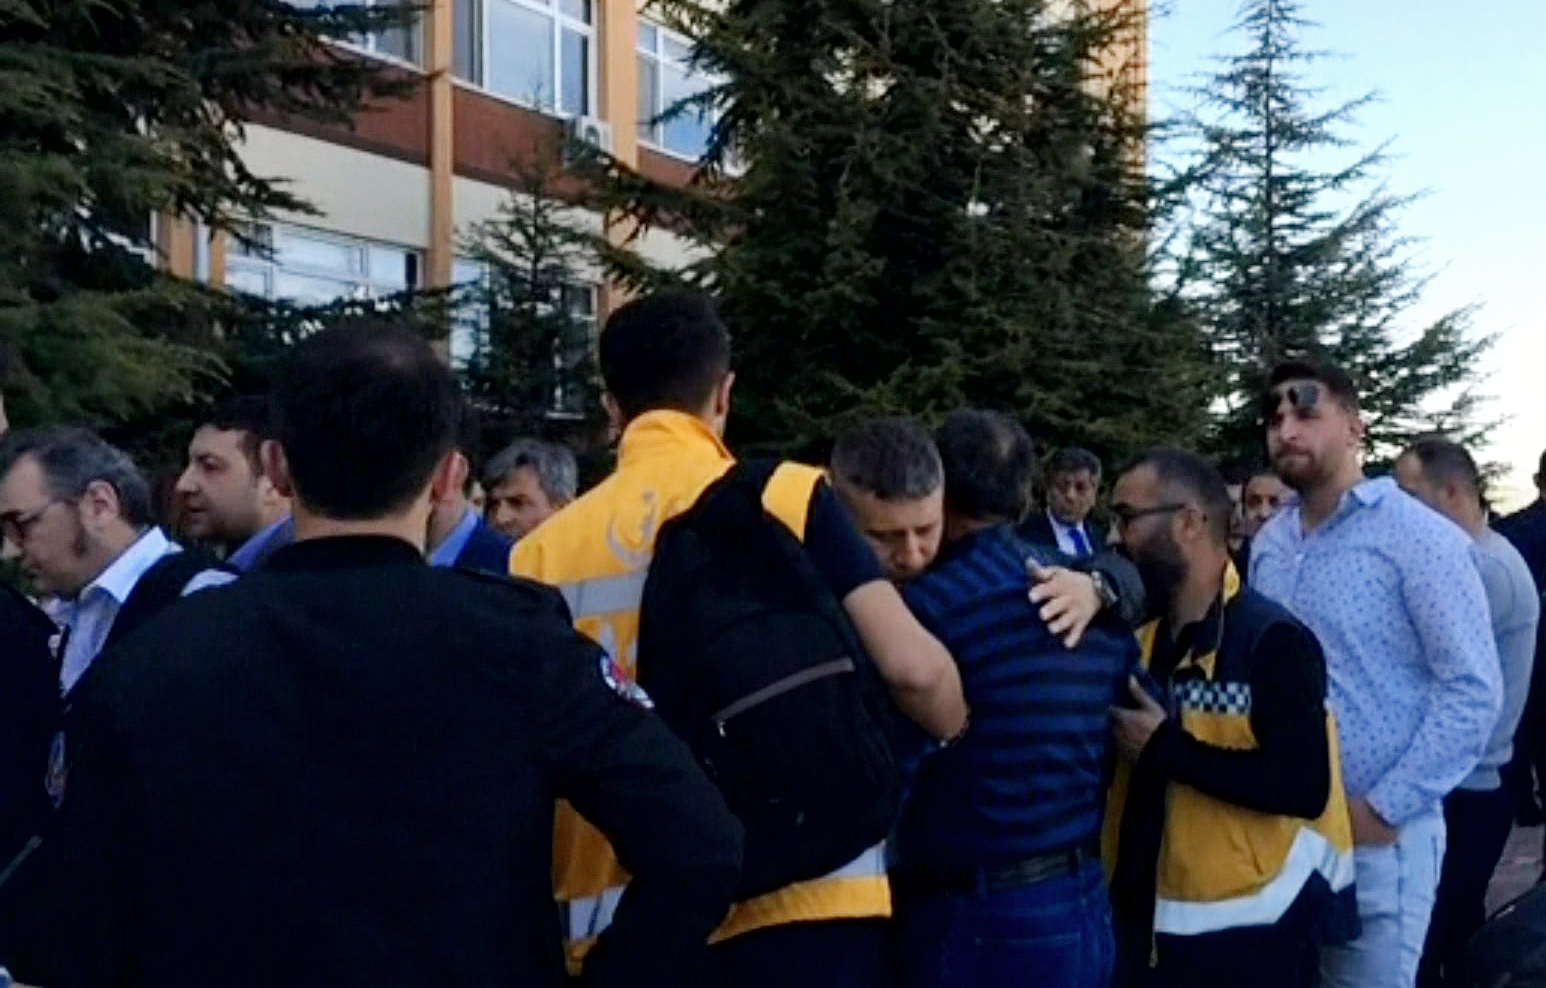 4 dead, 3 injured in Turkey university shooting